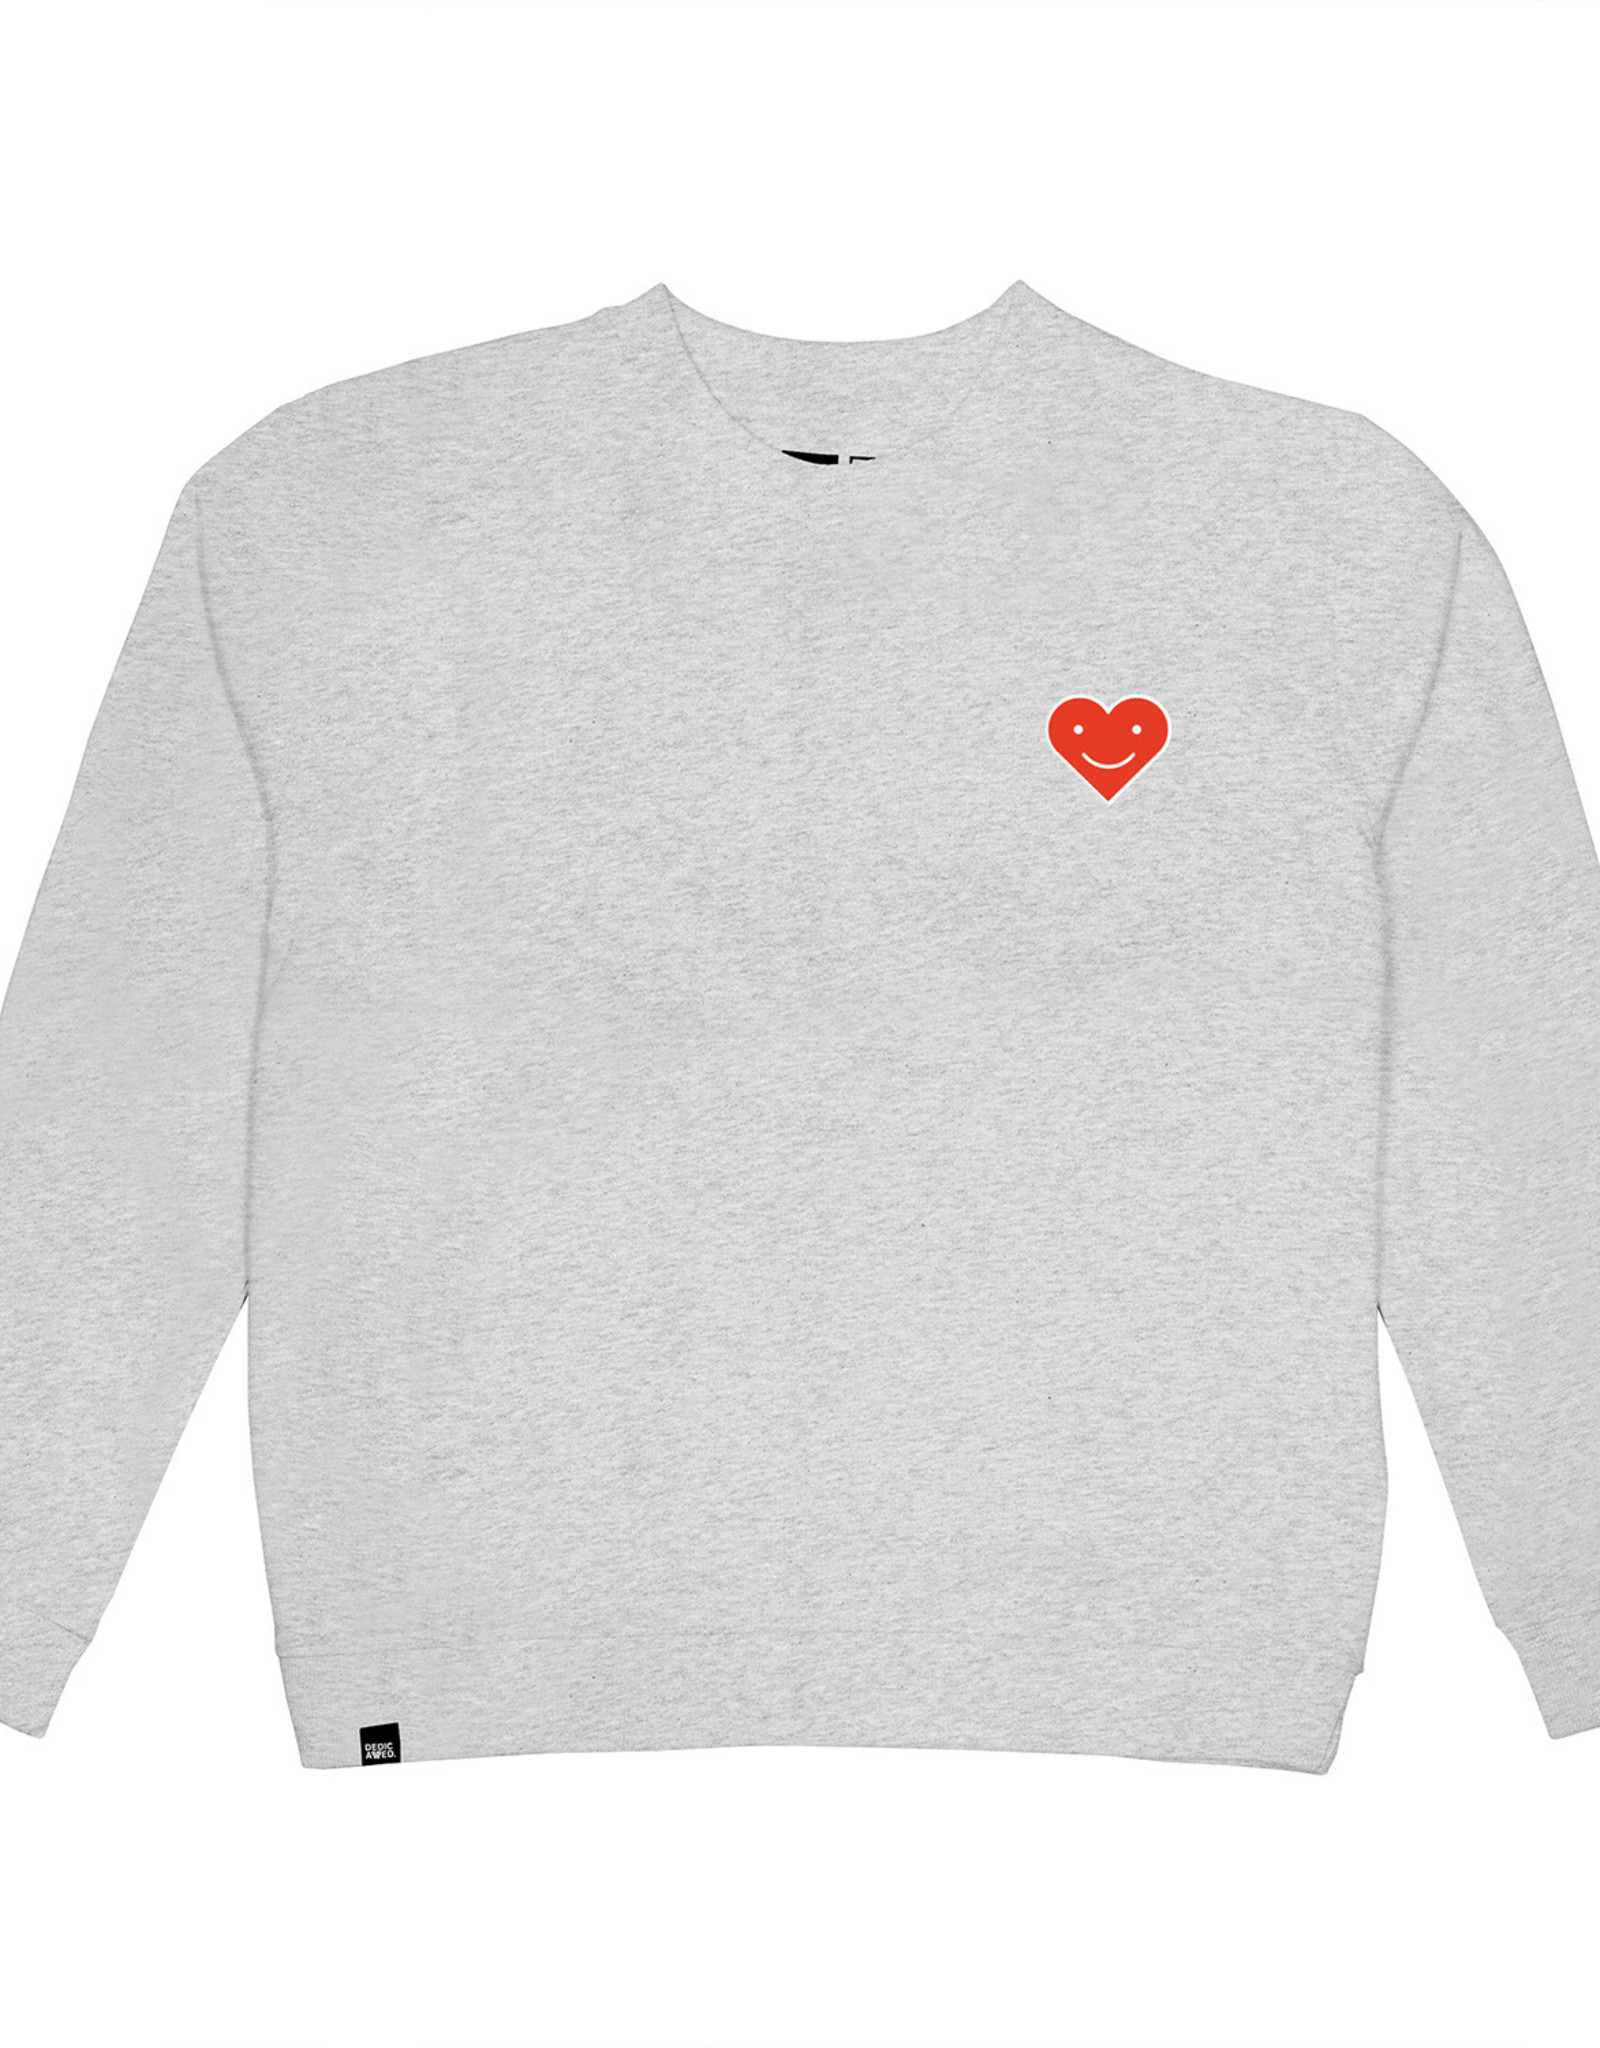 Dedicated SWEATSHIRT HAPPY HEART EMBLEEM